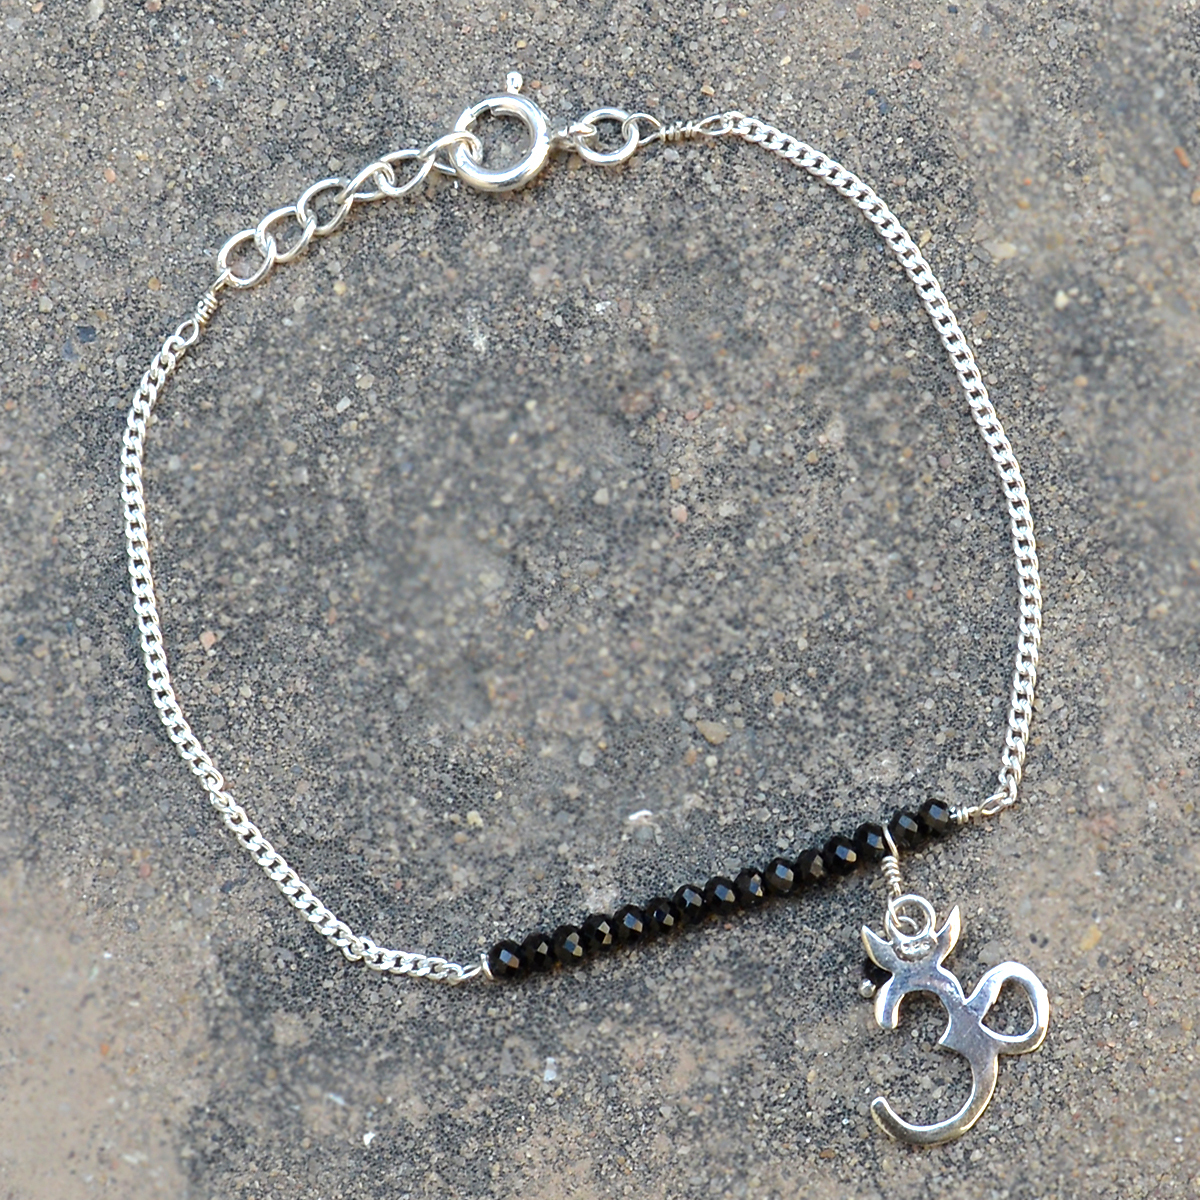 Black Onyx Gemstone Silver New Bracelet PG-155888